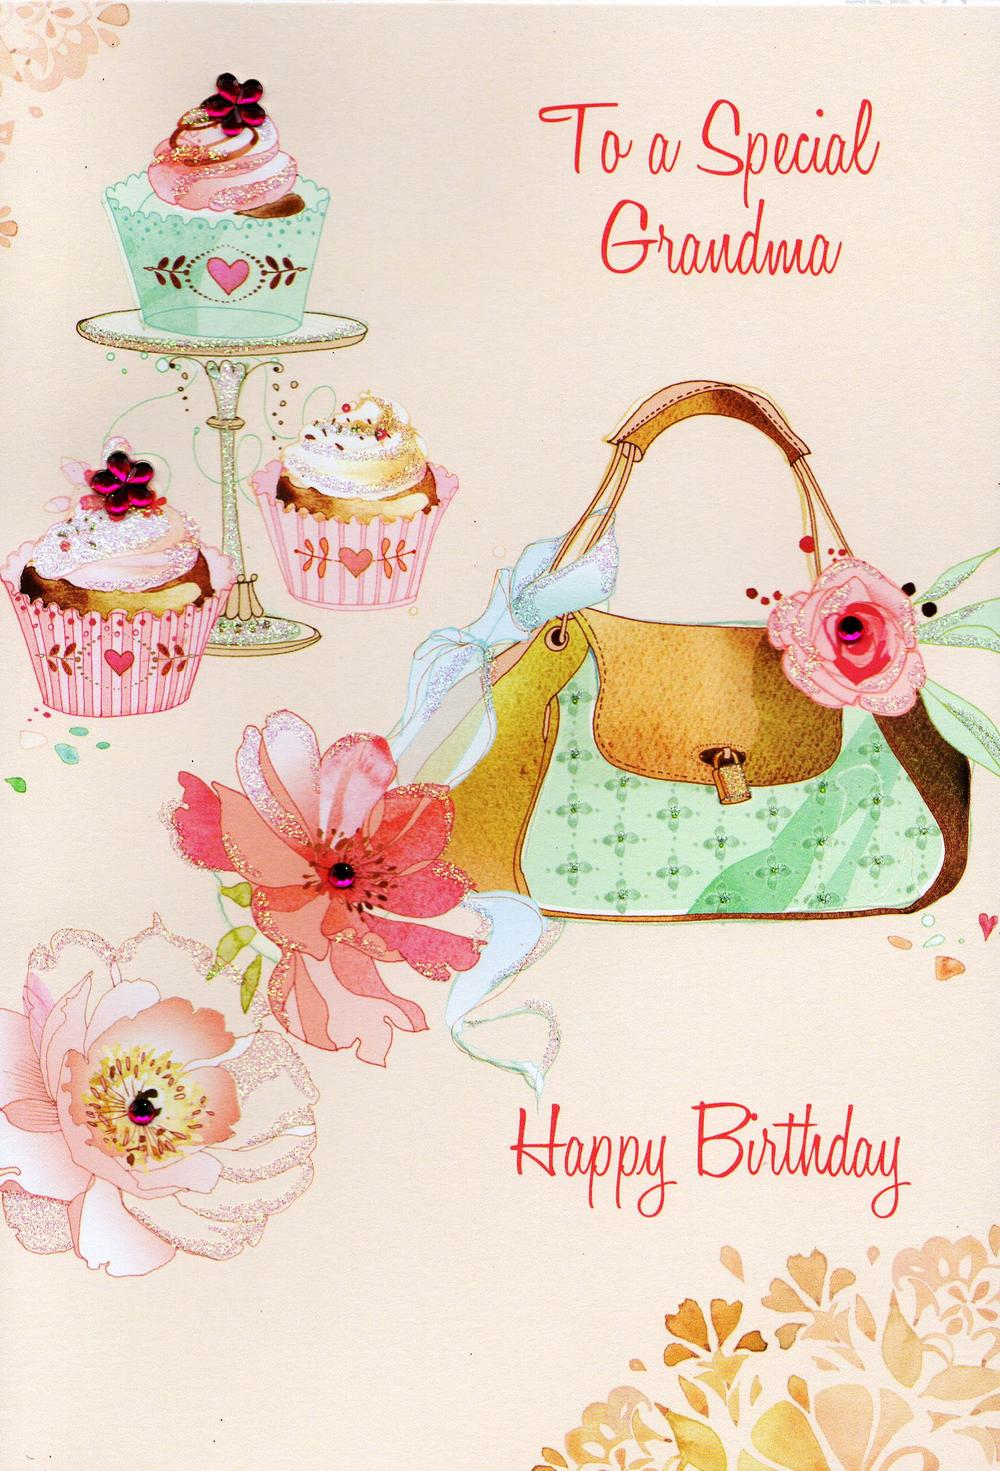 Grandma Happy Birthday Card Water Colours By Second Nature